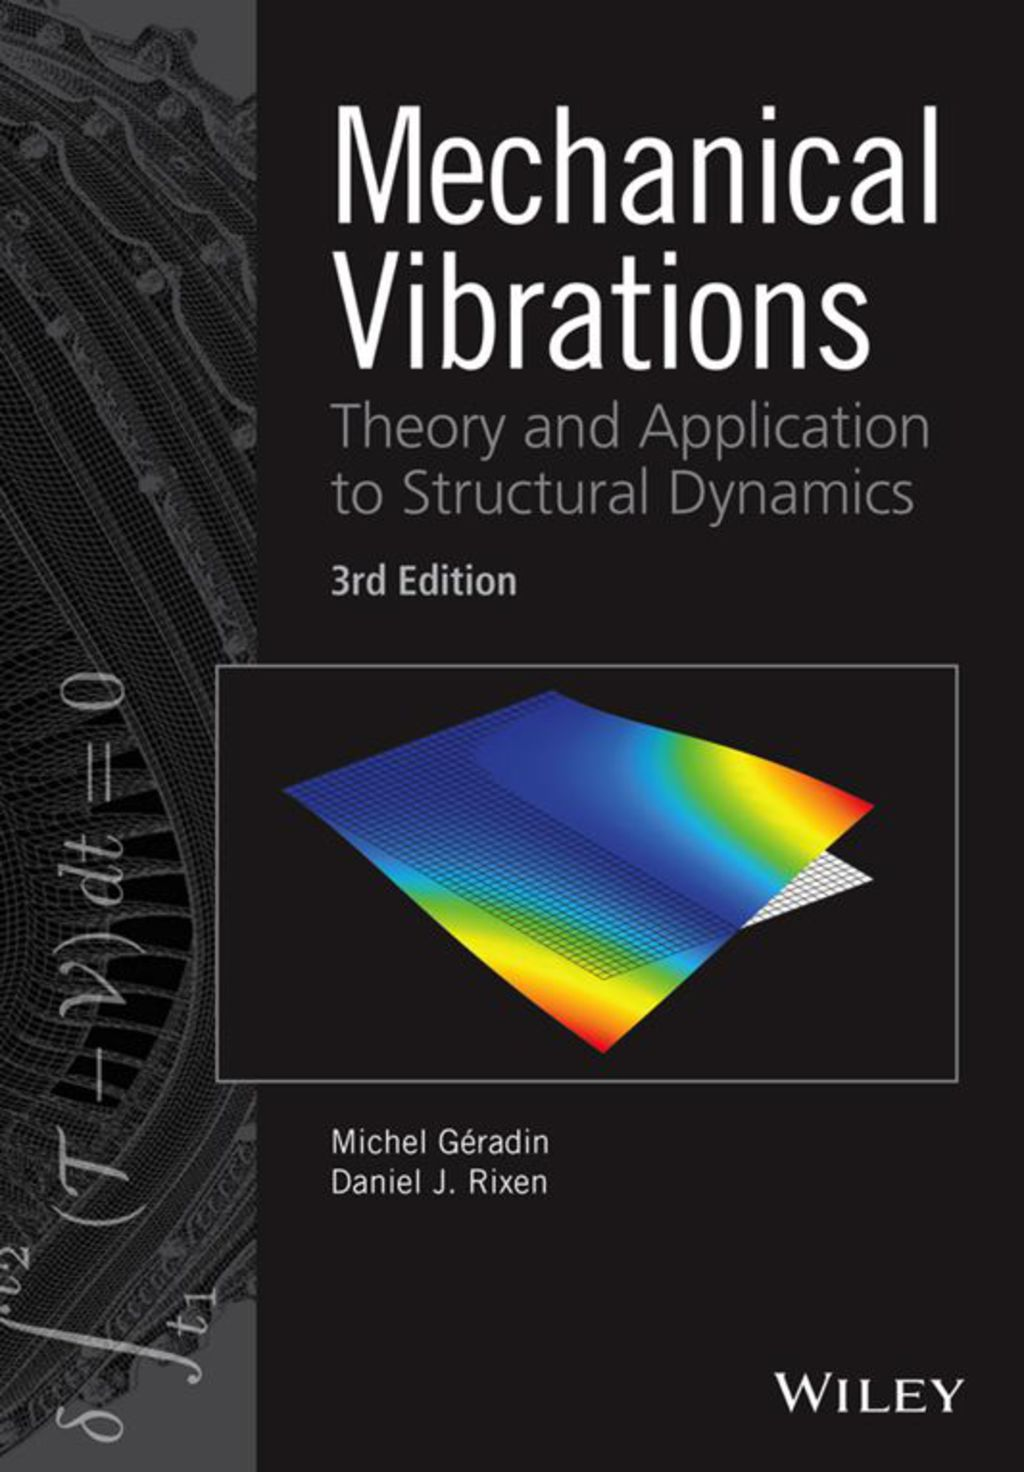 Mechanical Vibrations (ebook) eBooks